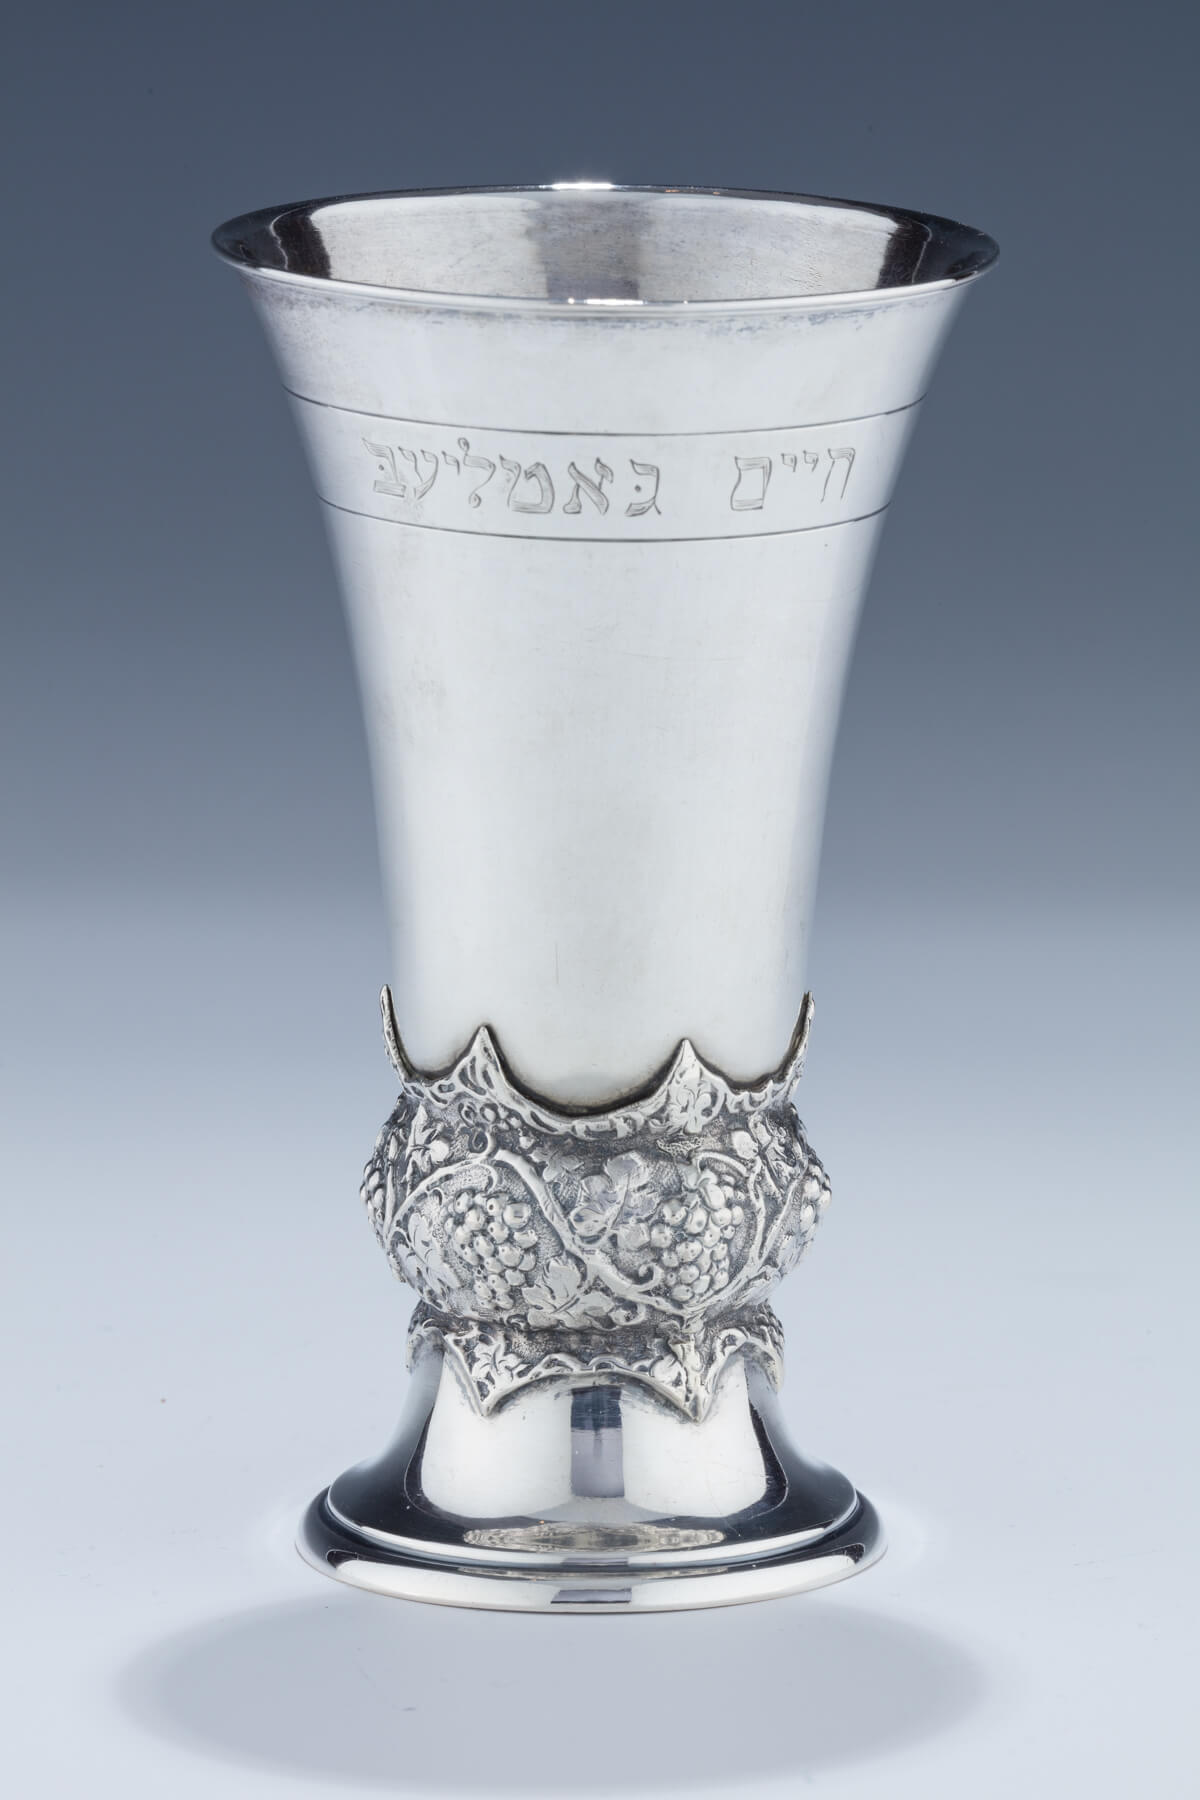 072. A Large Silver Kiddush Cup